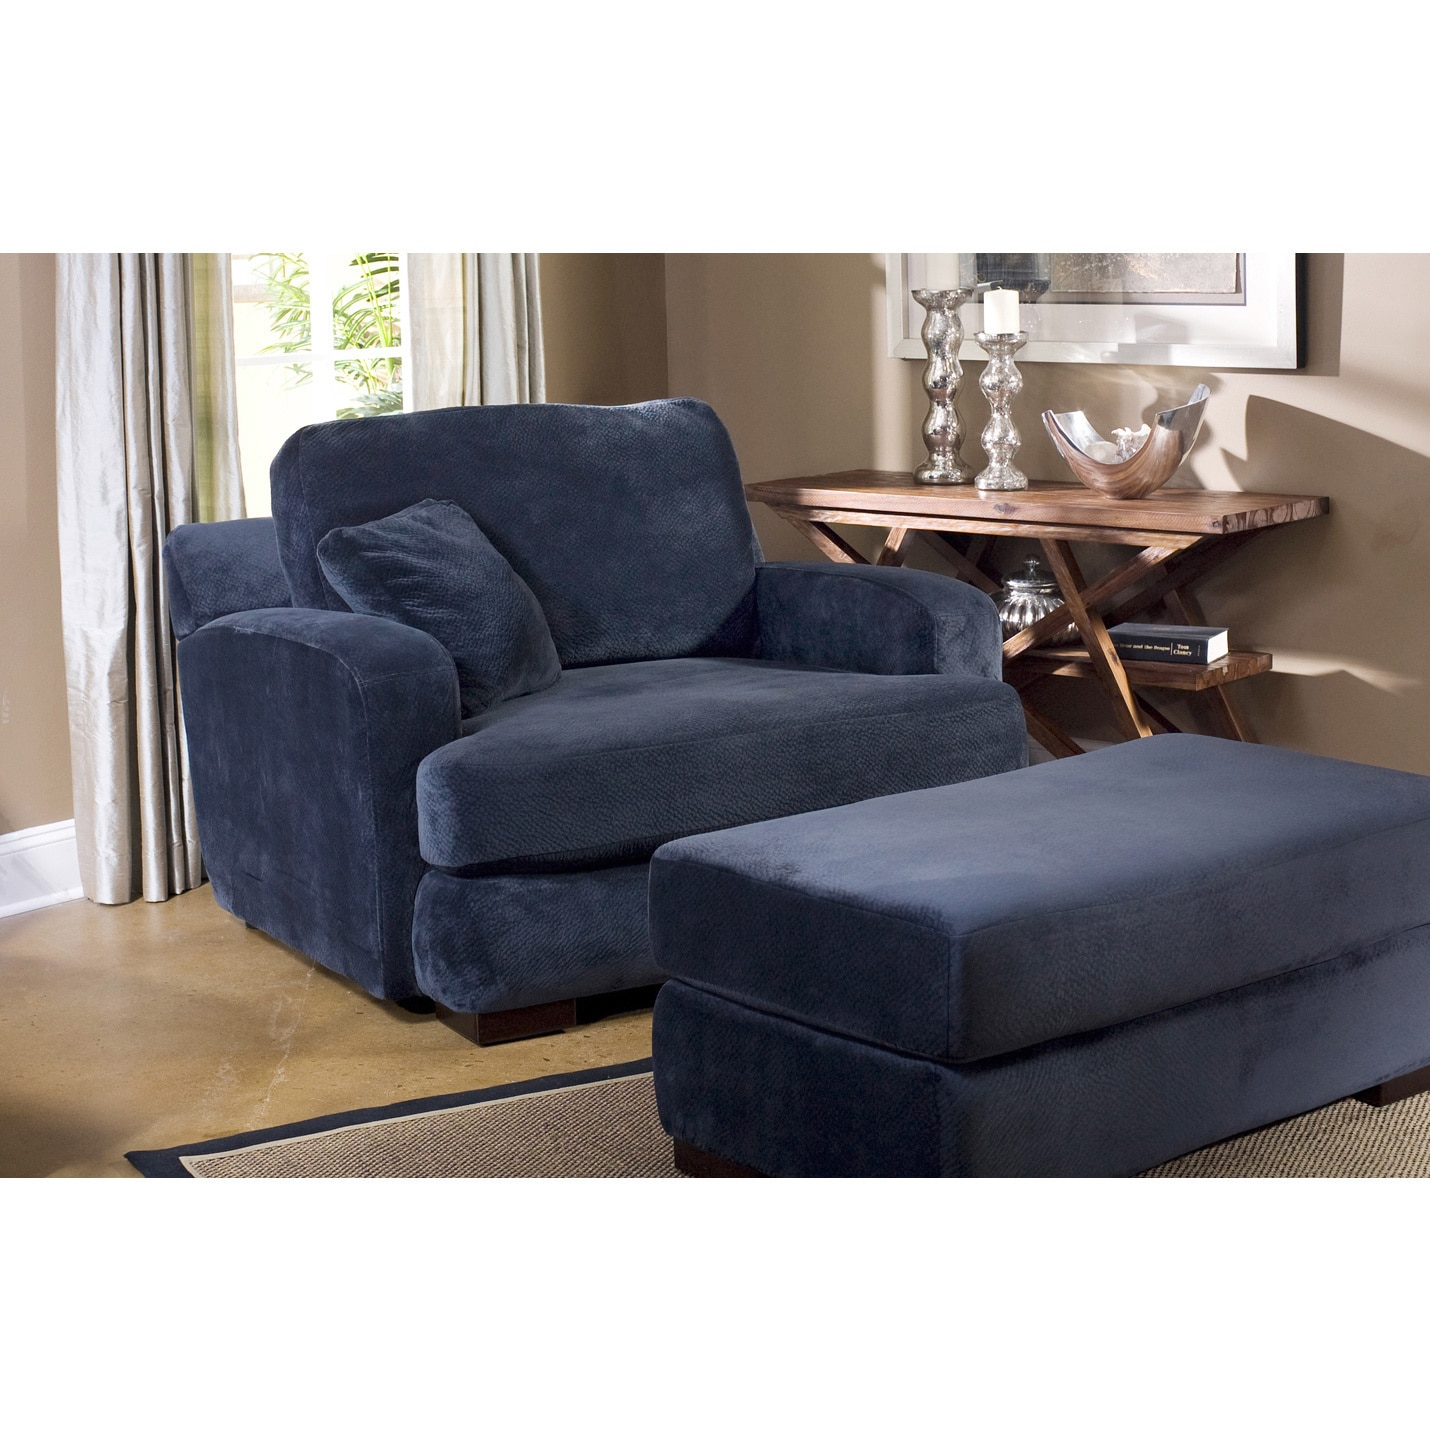 fairmont designs made to order melanie navy chair and ottoman set overstock shopping great. Black Bedroom Furniture Sets. Home Design Ideas